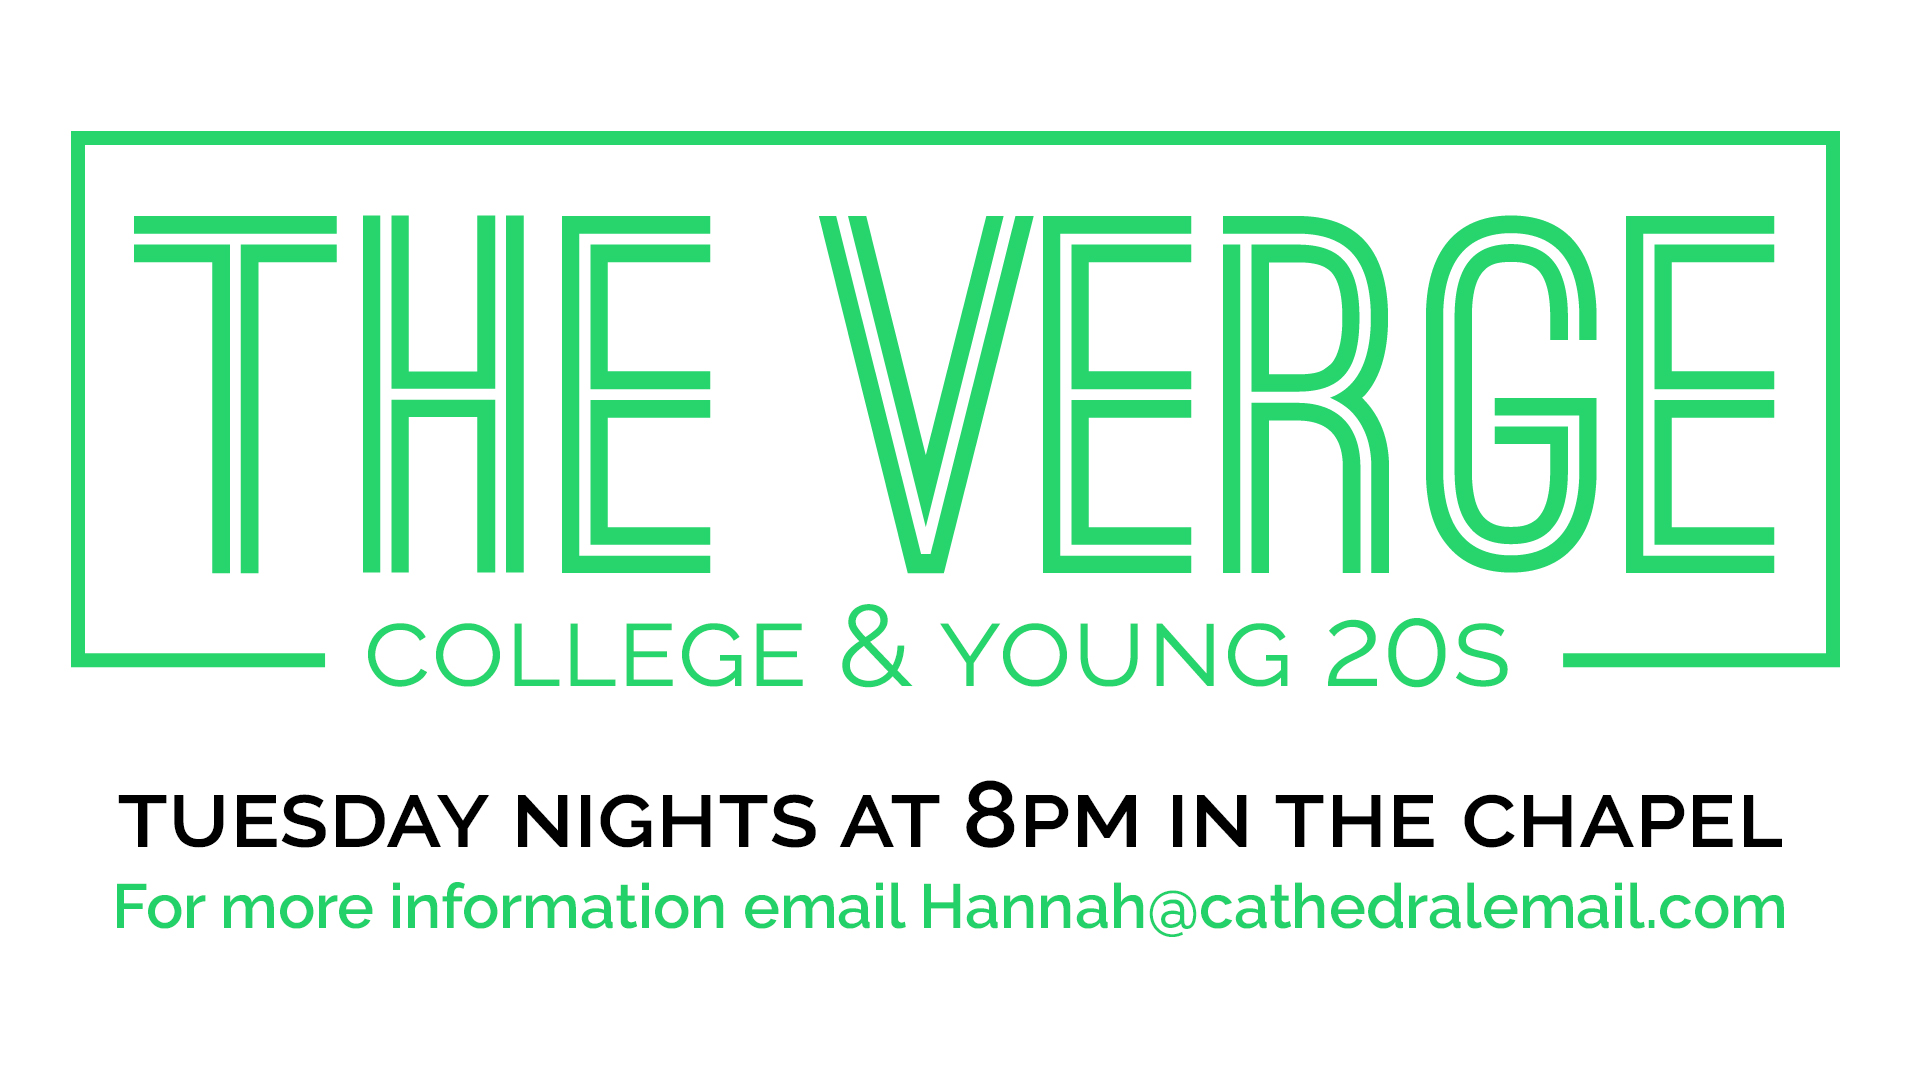 The Verge ministry - college & young 20s